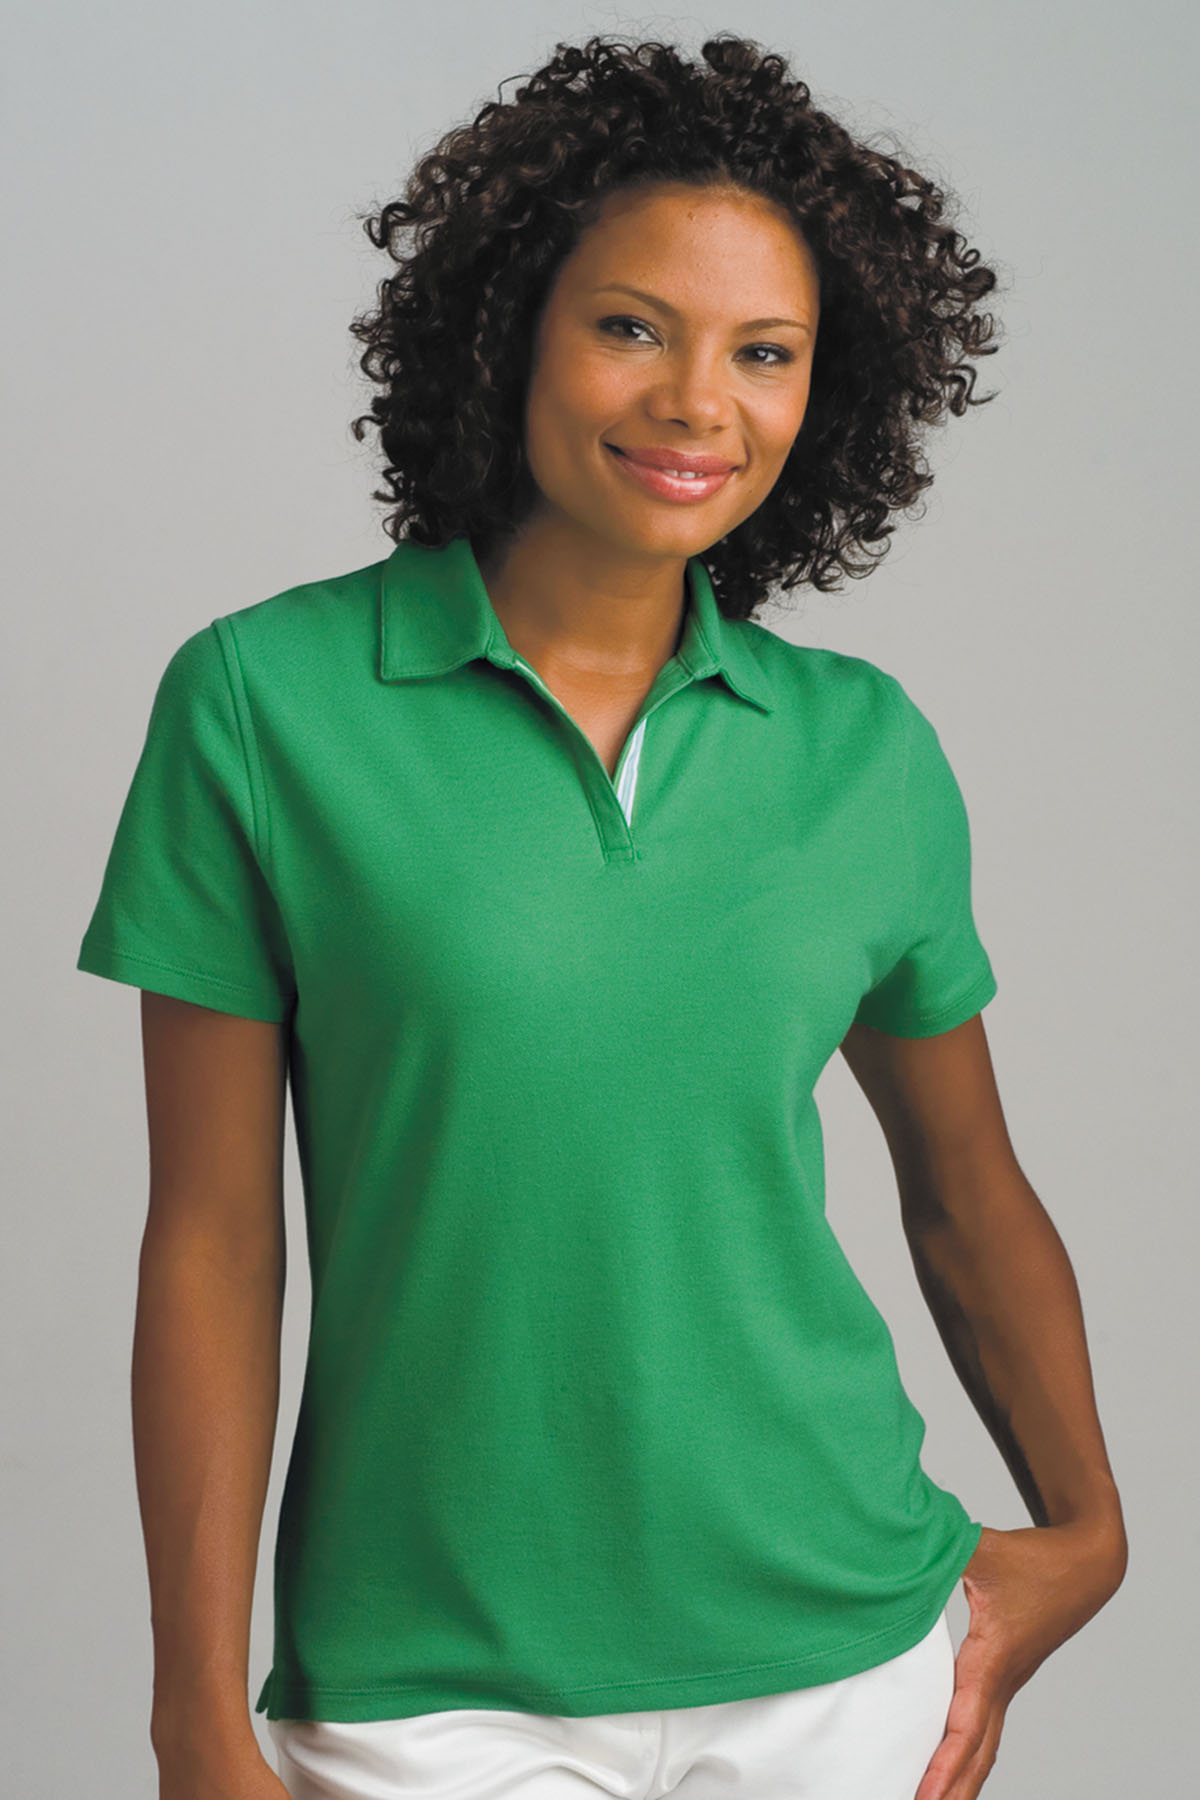 Vansport 2771 - Vansport Women's Double-Tuck Pique Polo